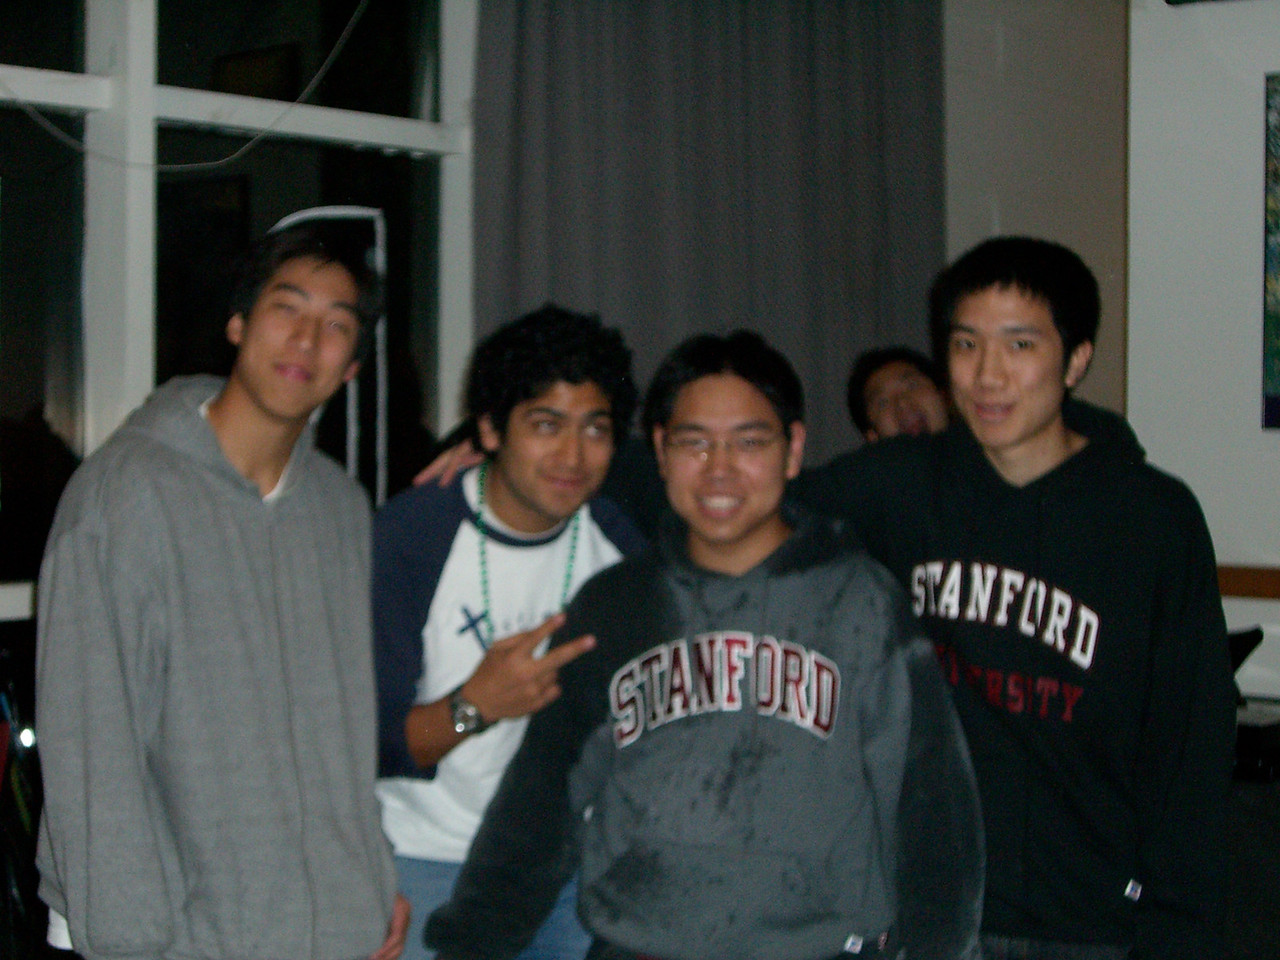 2006 03 01 Wed - David Chiang's B-day - James Lee, Pablo Pozo, David Chiang, & Michael Lin